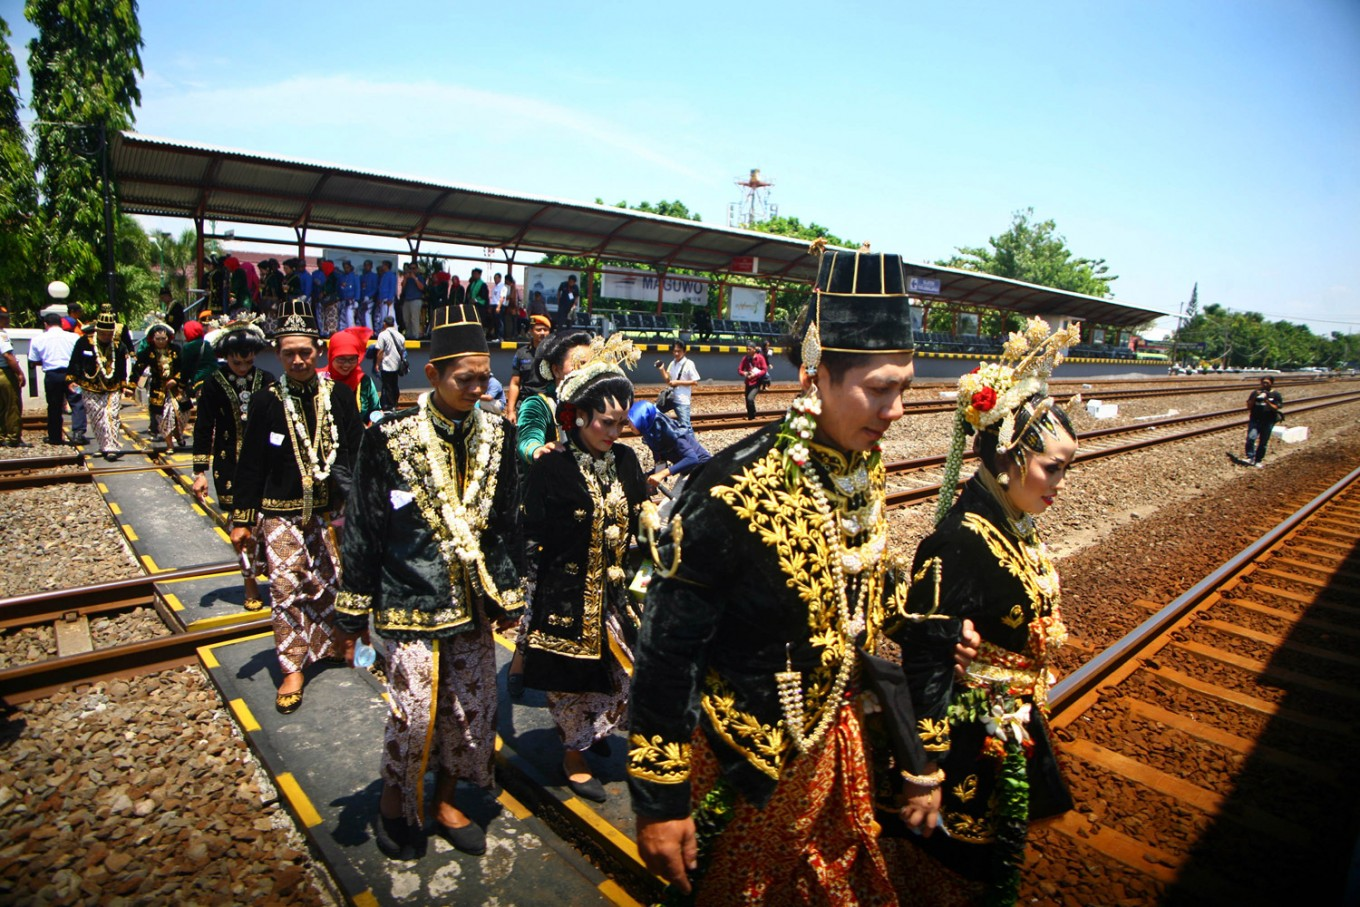 Couples arrive at Maguwo station to be paraded toward Tugu Station on the Prambanan express train after their wedding vows on Sept. 6. JP/ Aditya Sagita